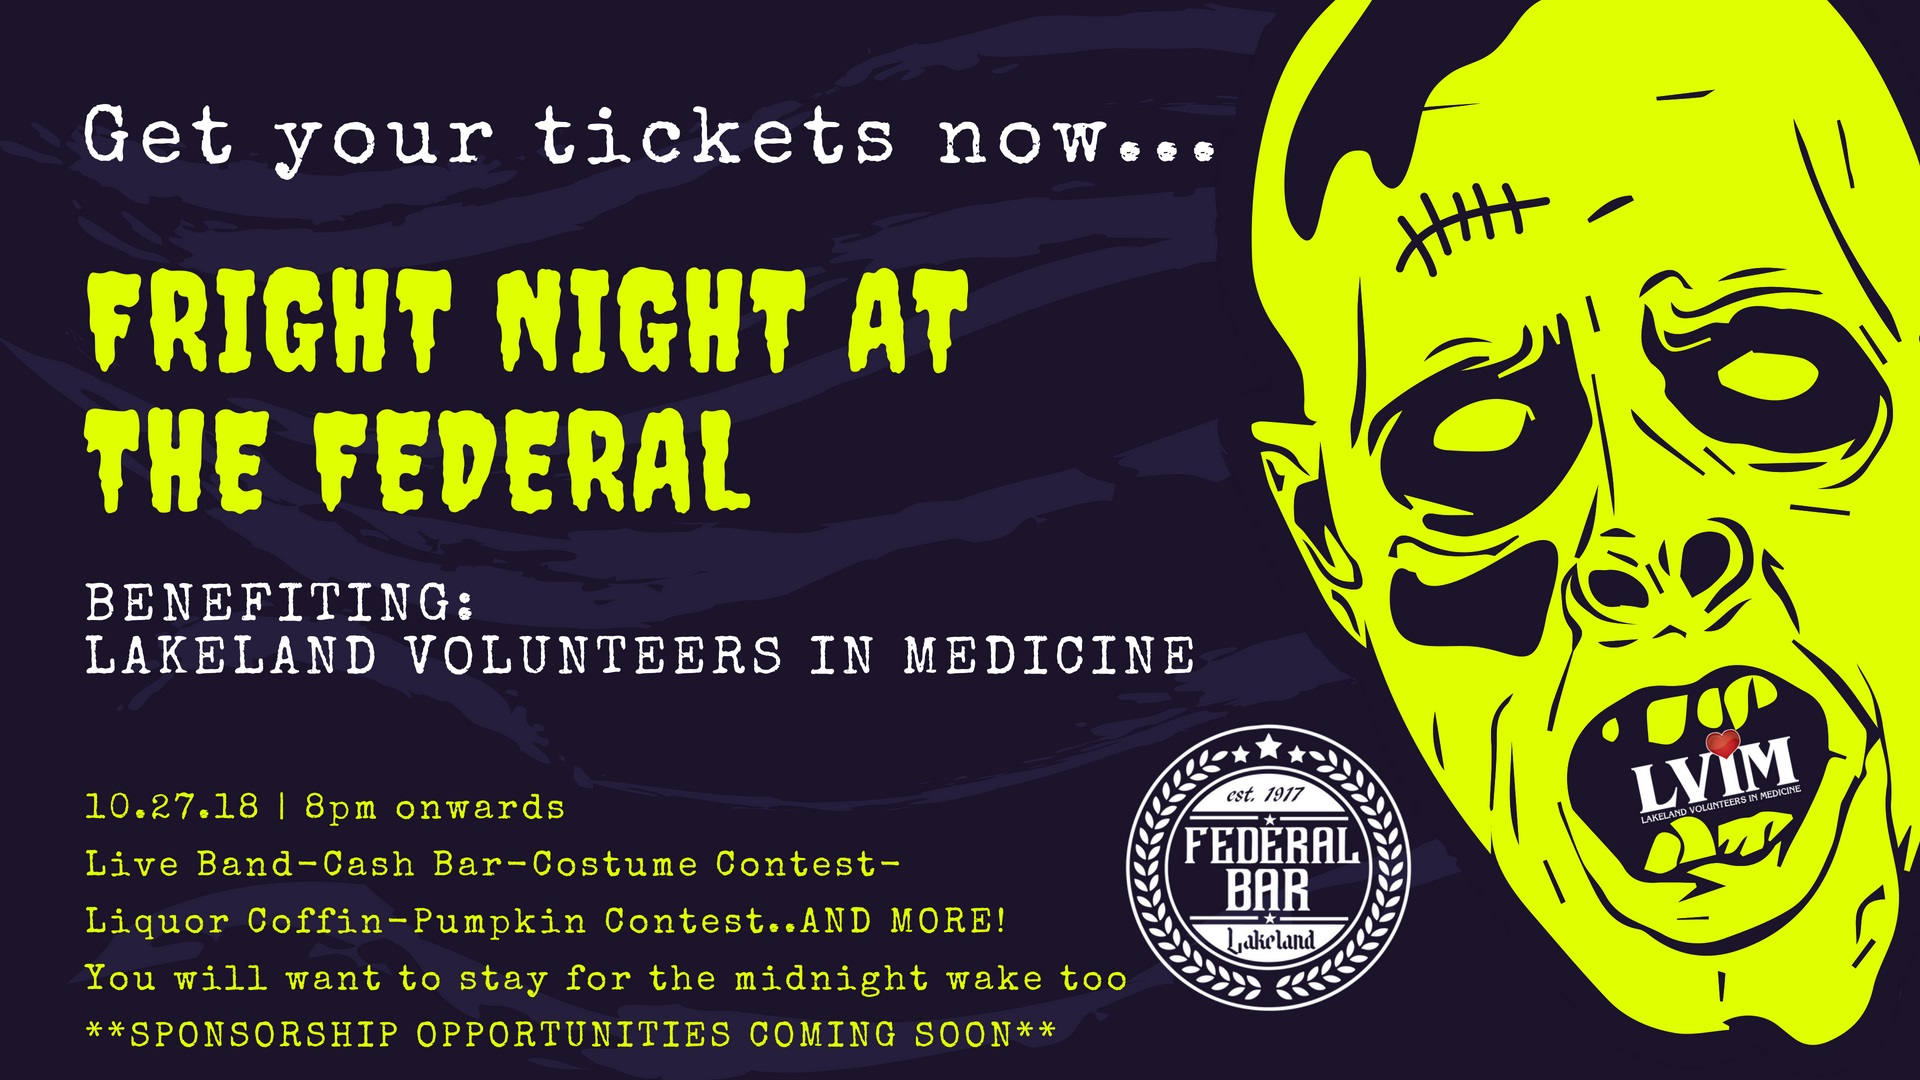 Fright Night at the Federal